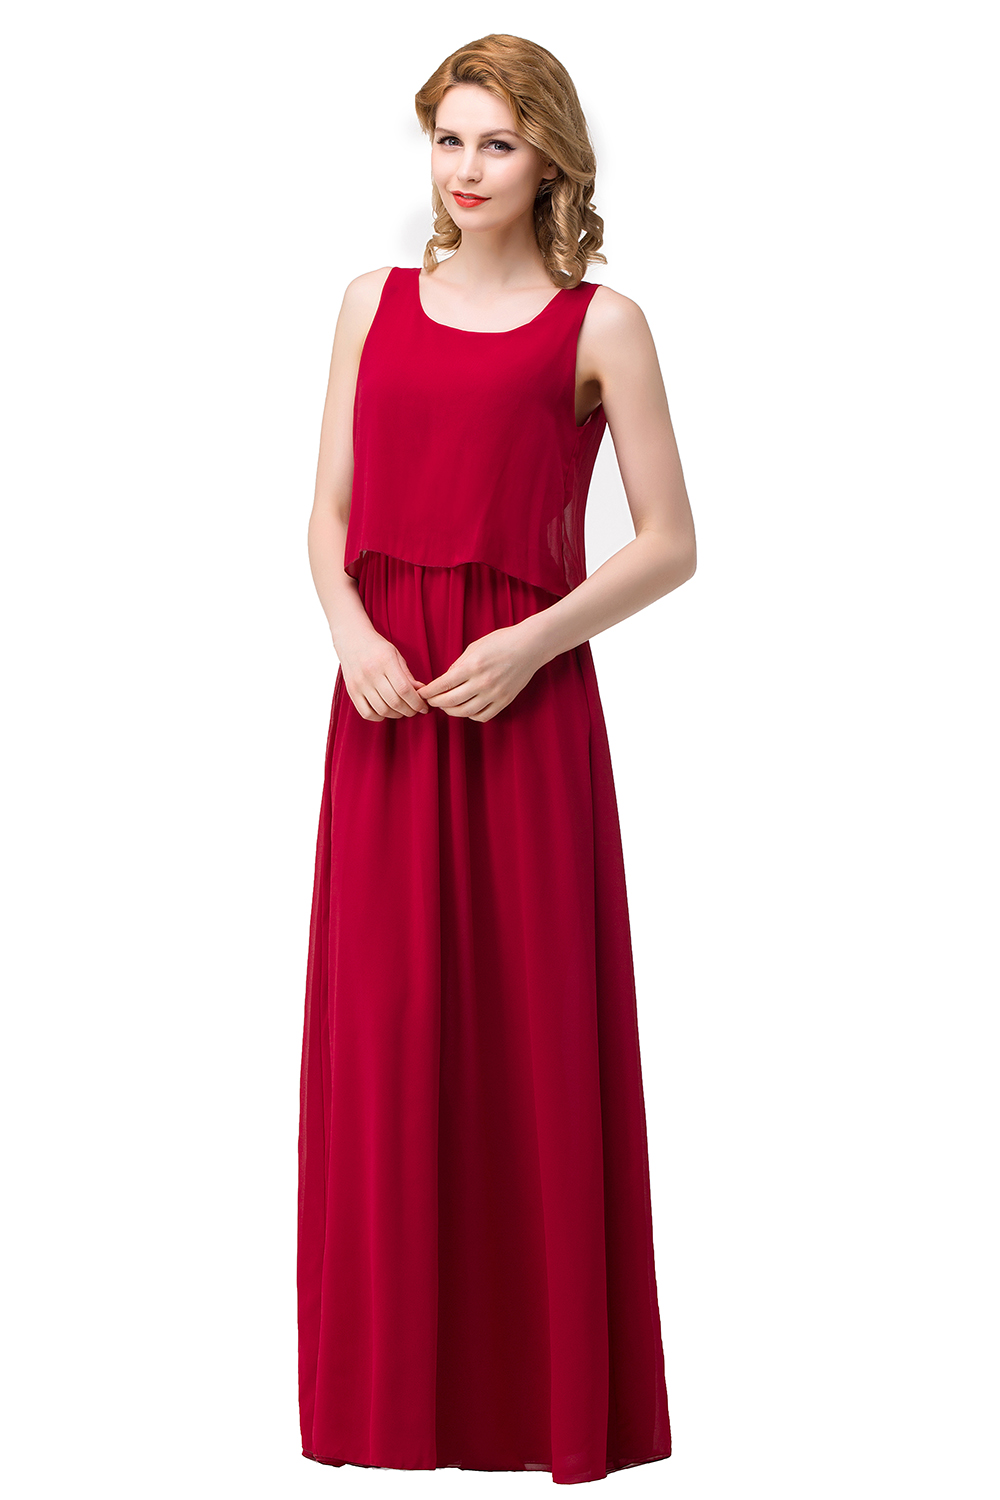 Cheap nice clothes online